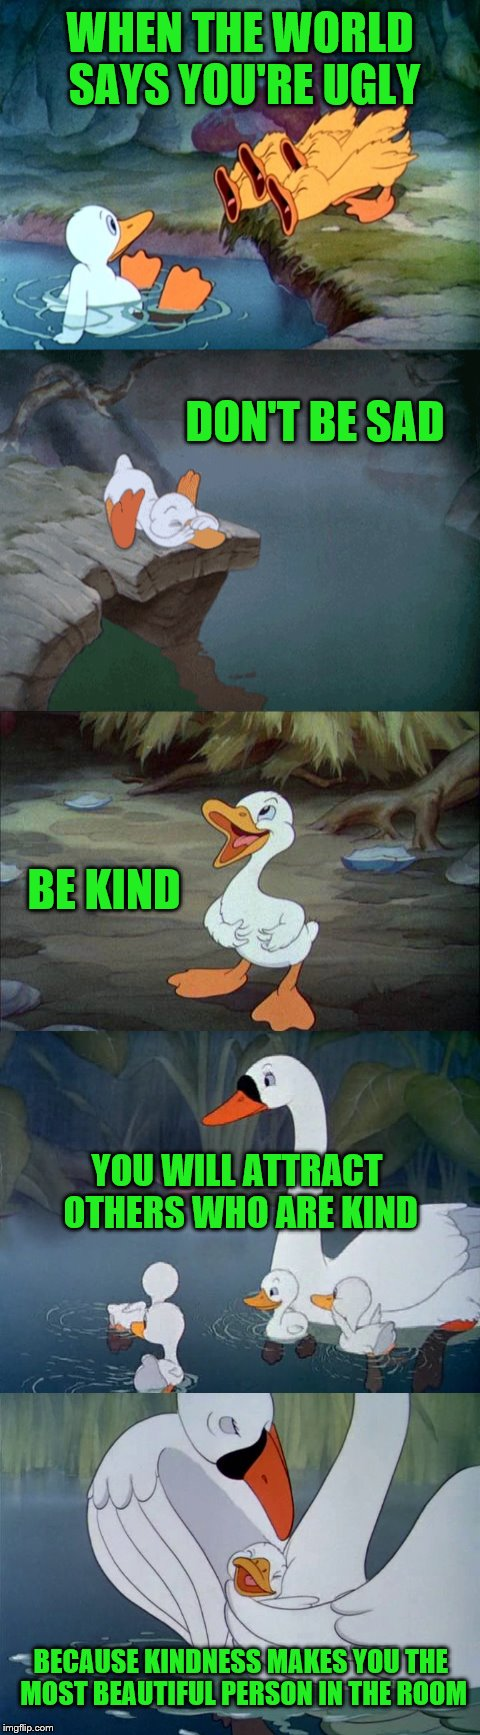 This cartoon pulled at my heartstrings as a kid. | WHEN THE WORLD SAYS YOU'RE UGLY DON'T BE SAD BE KIND YOU WILL ATTRACT OTHERS WHO ARE KIND BECAUSE KINDNESS MAKES YOU THE MOST BEAUTIFUL PERS | image tagged in memes,ugly duckling,beautiful,kindness | made w/ Imgflip meme maker